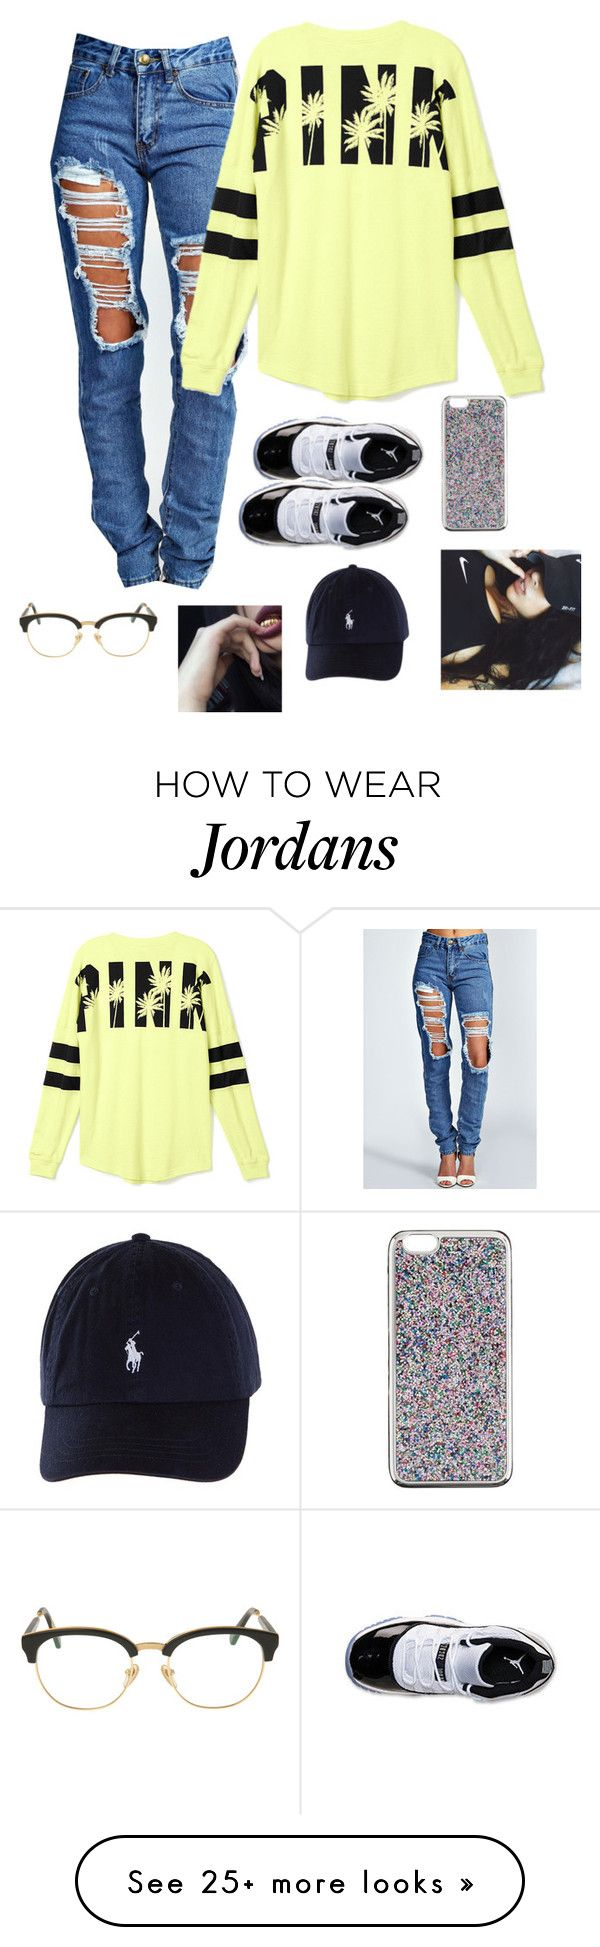 """Untitled #122"" by baby-boogaloo on Polyvore featuring Boohoo, Victoria's Secret, Retrò, J.Crew, xO Design and Sunday Somewhere"